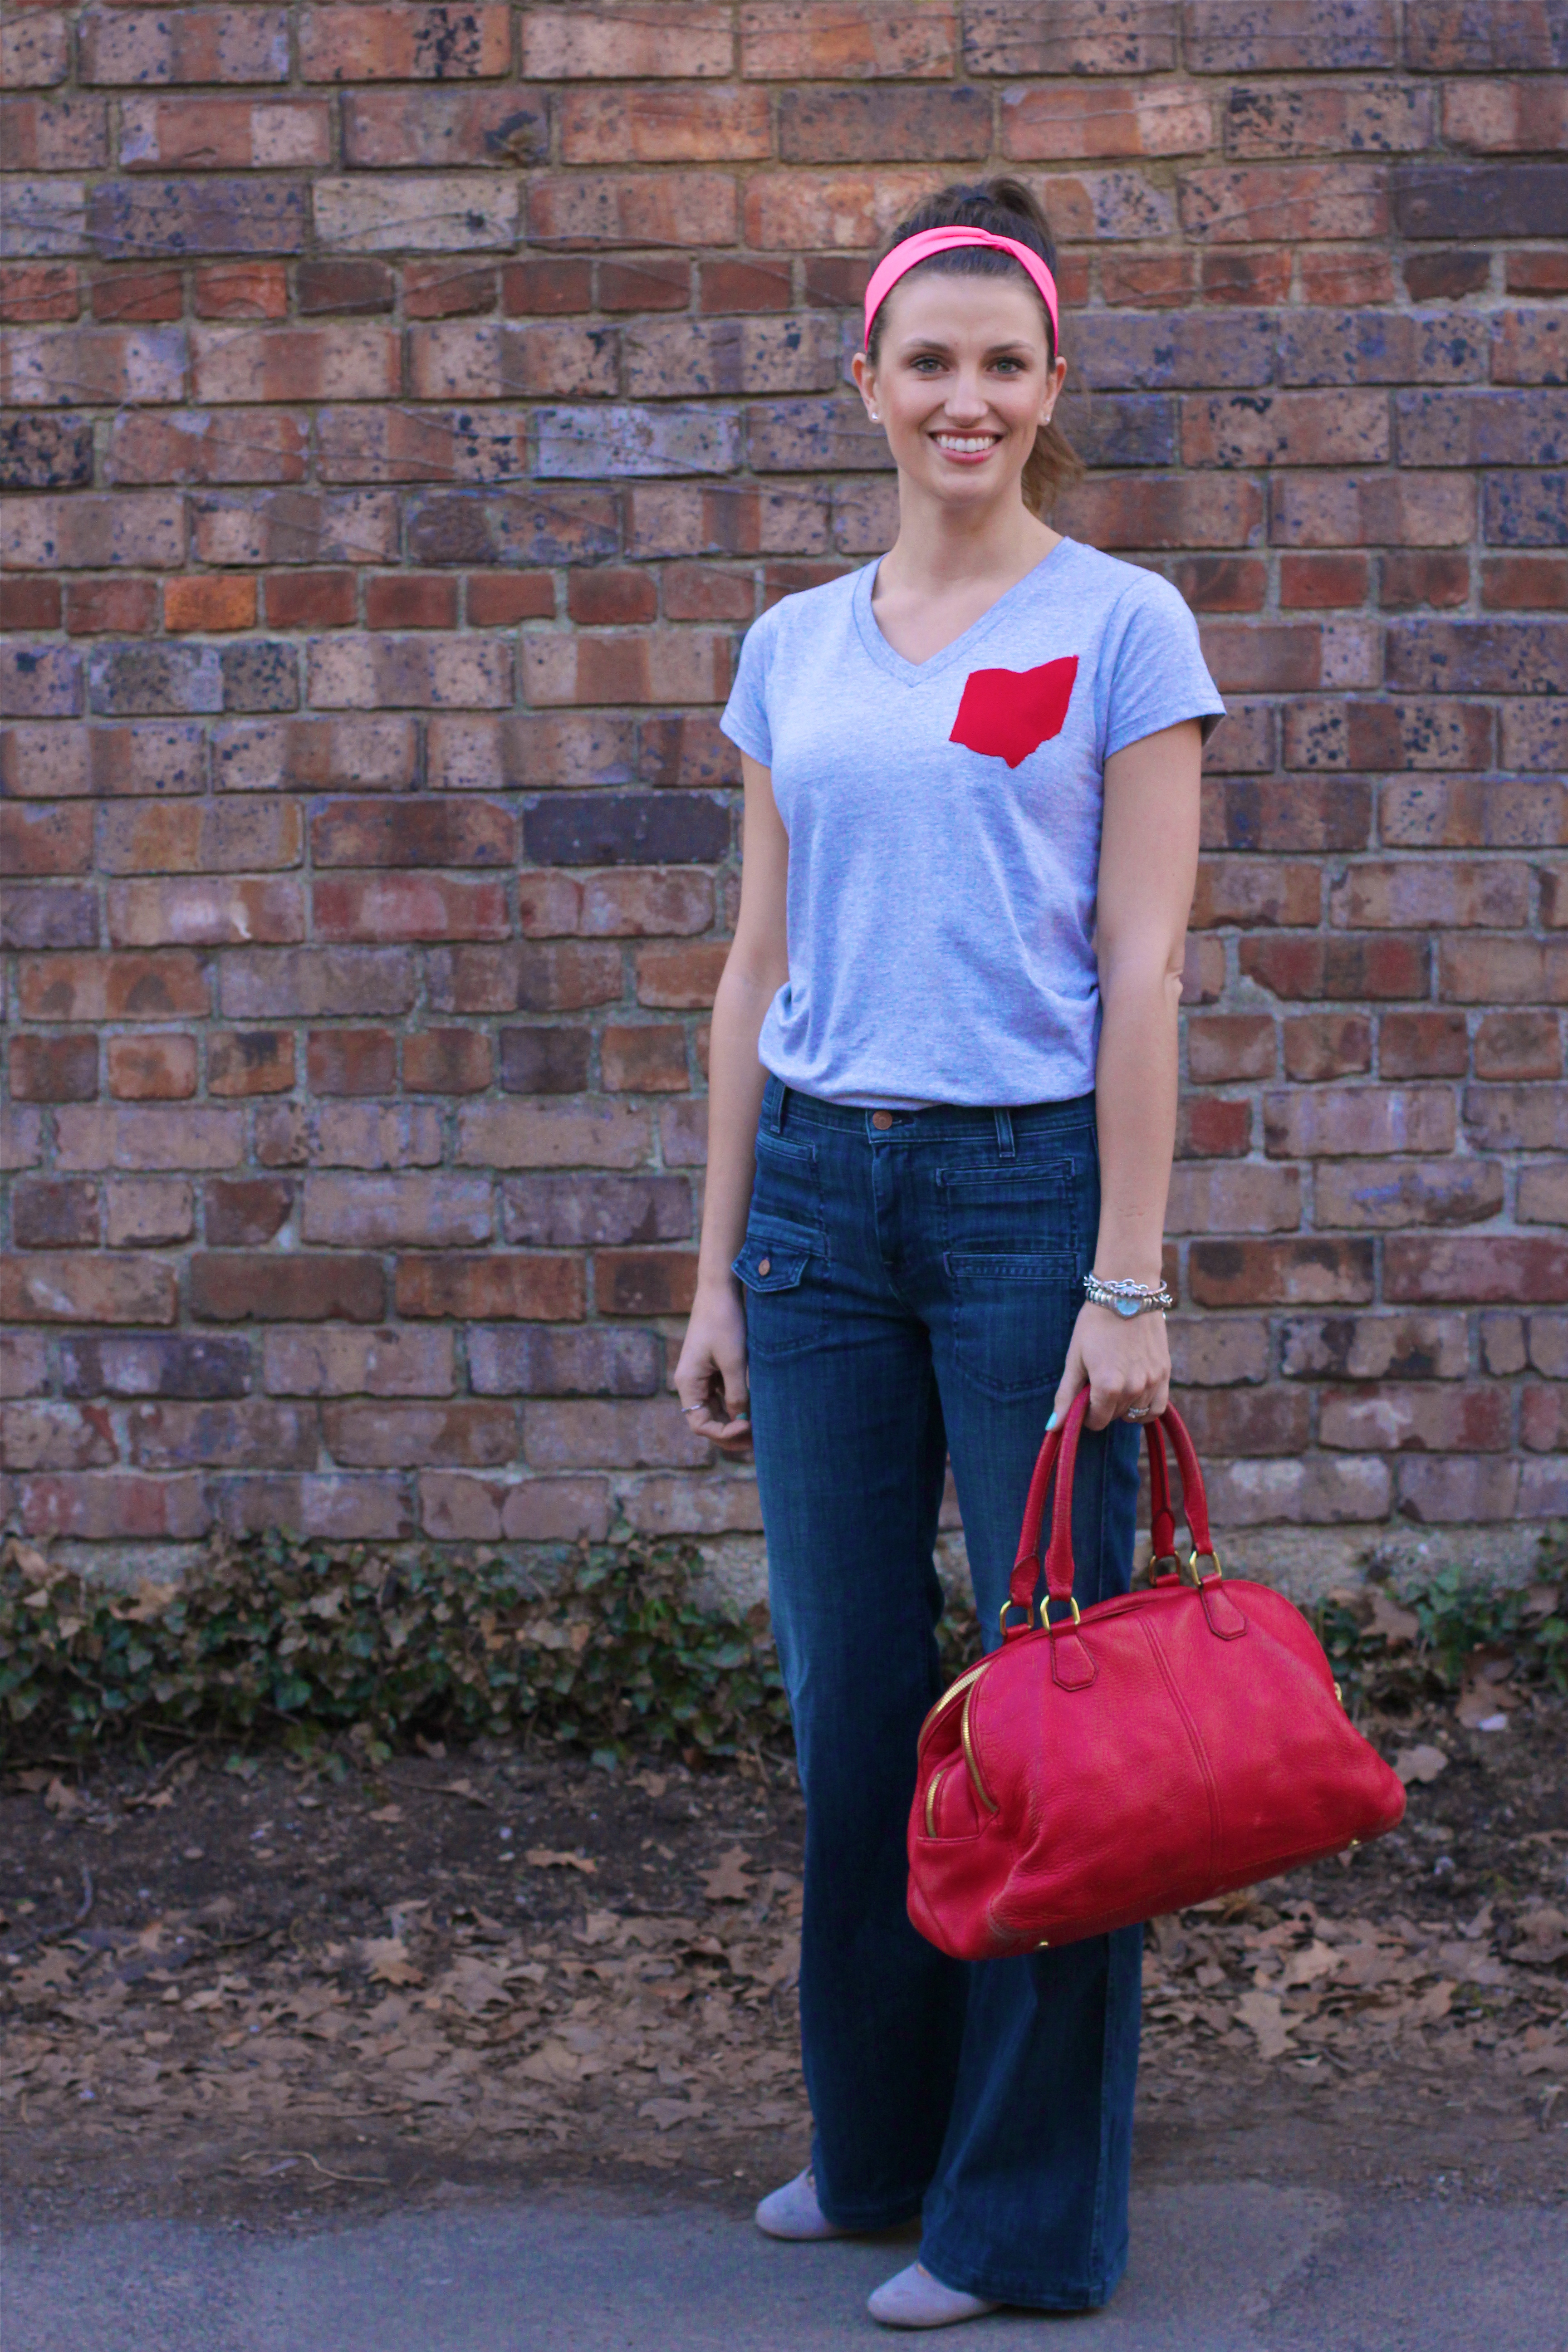 Ohio-Pocket-Tees-Scarlet-grey-vneck-girl-about-columbus